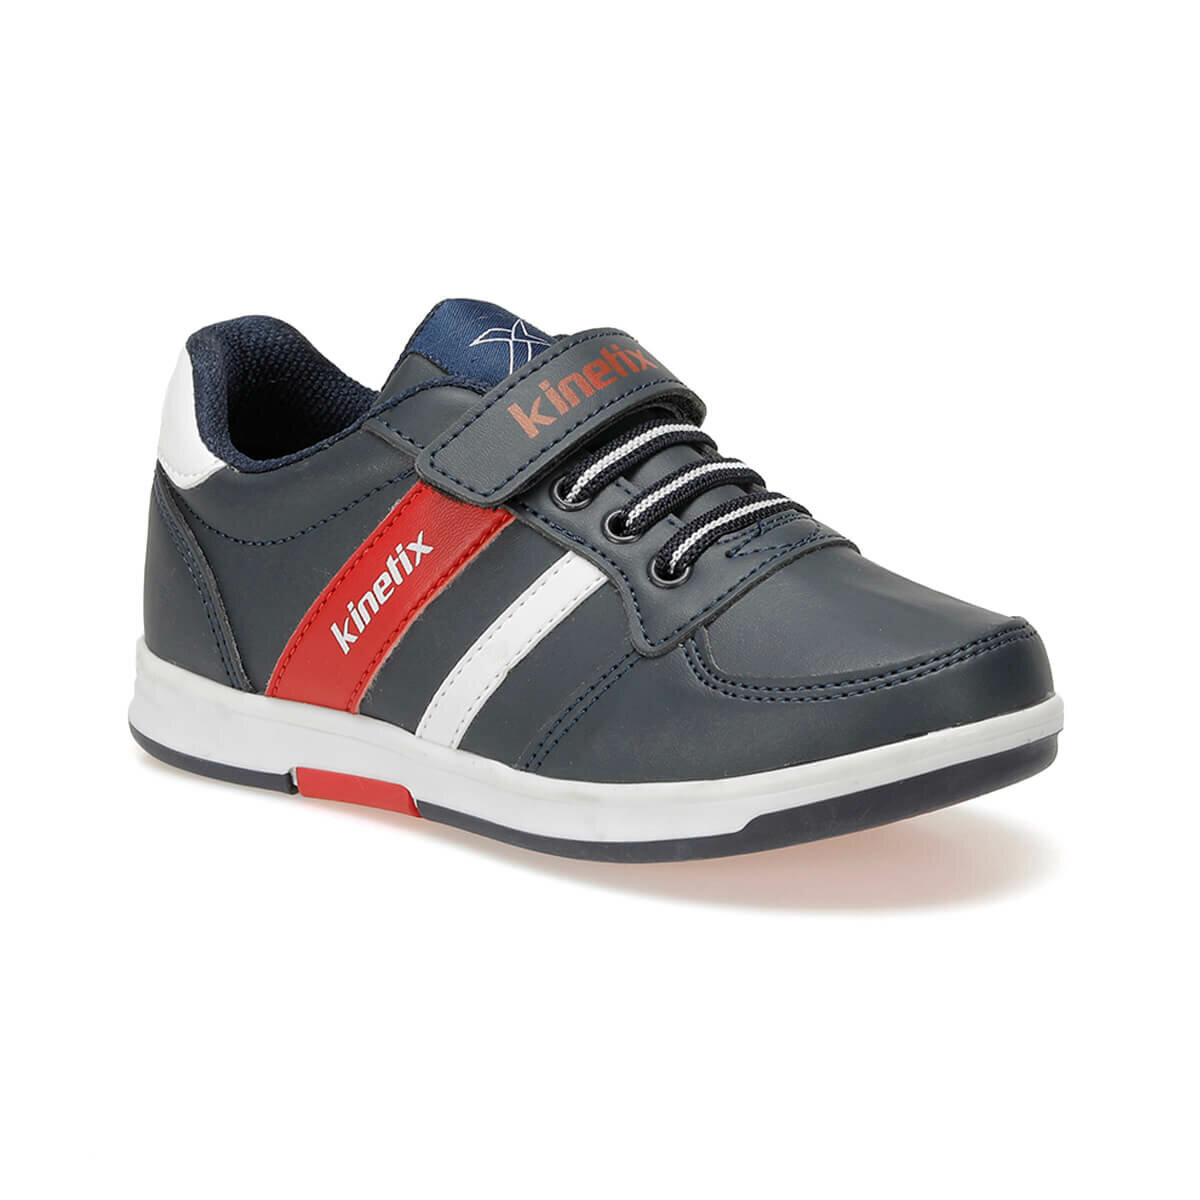 FLO UPTON PU 9PR Navy Blue Male Child Sneaker Shoes KINETIX